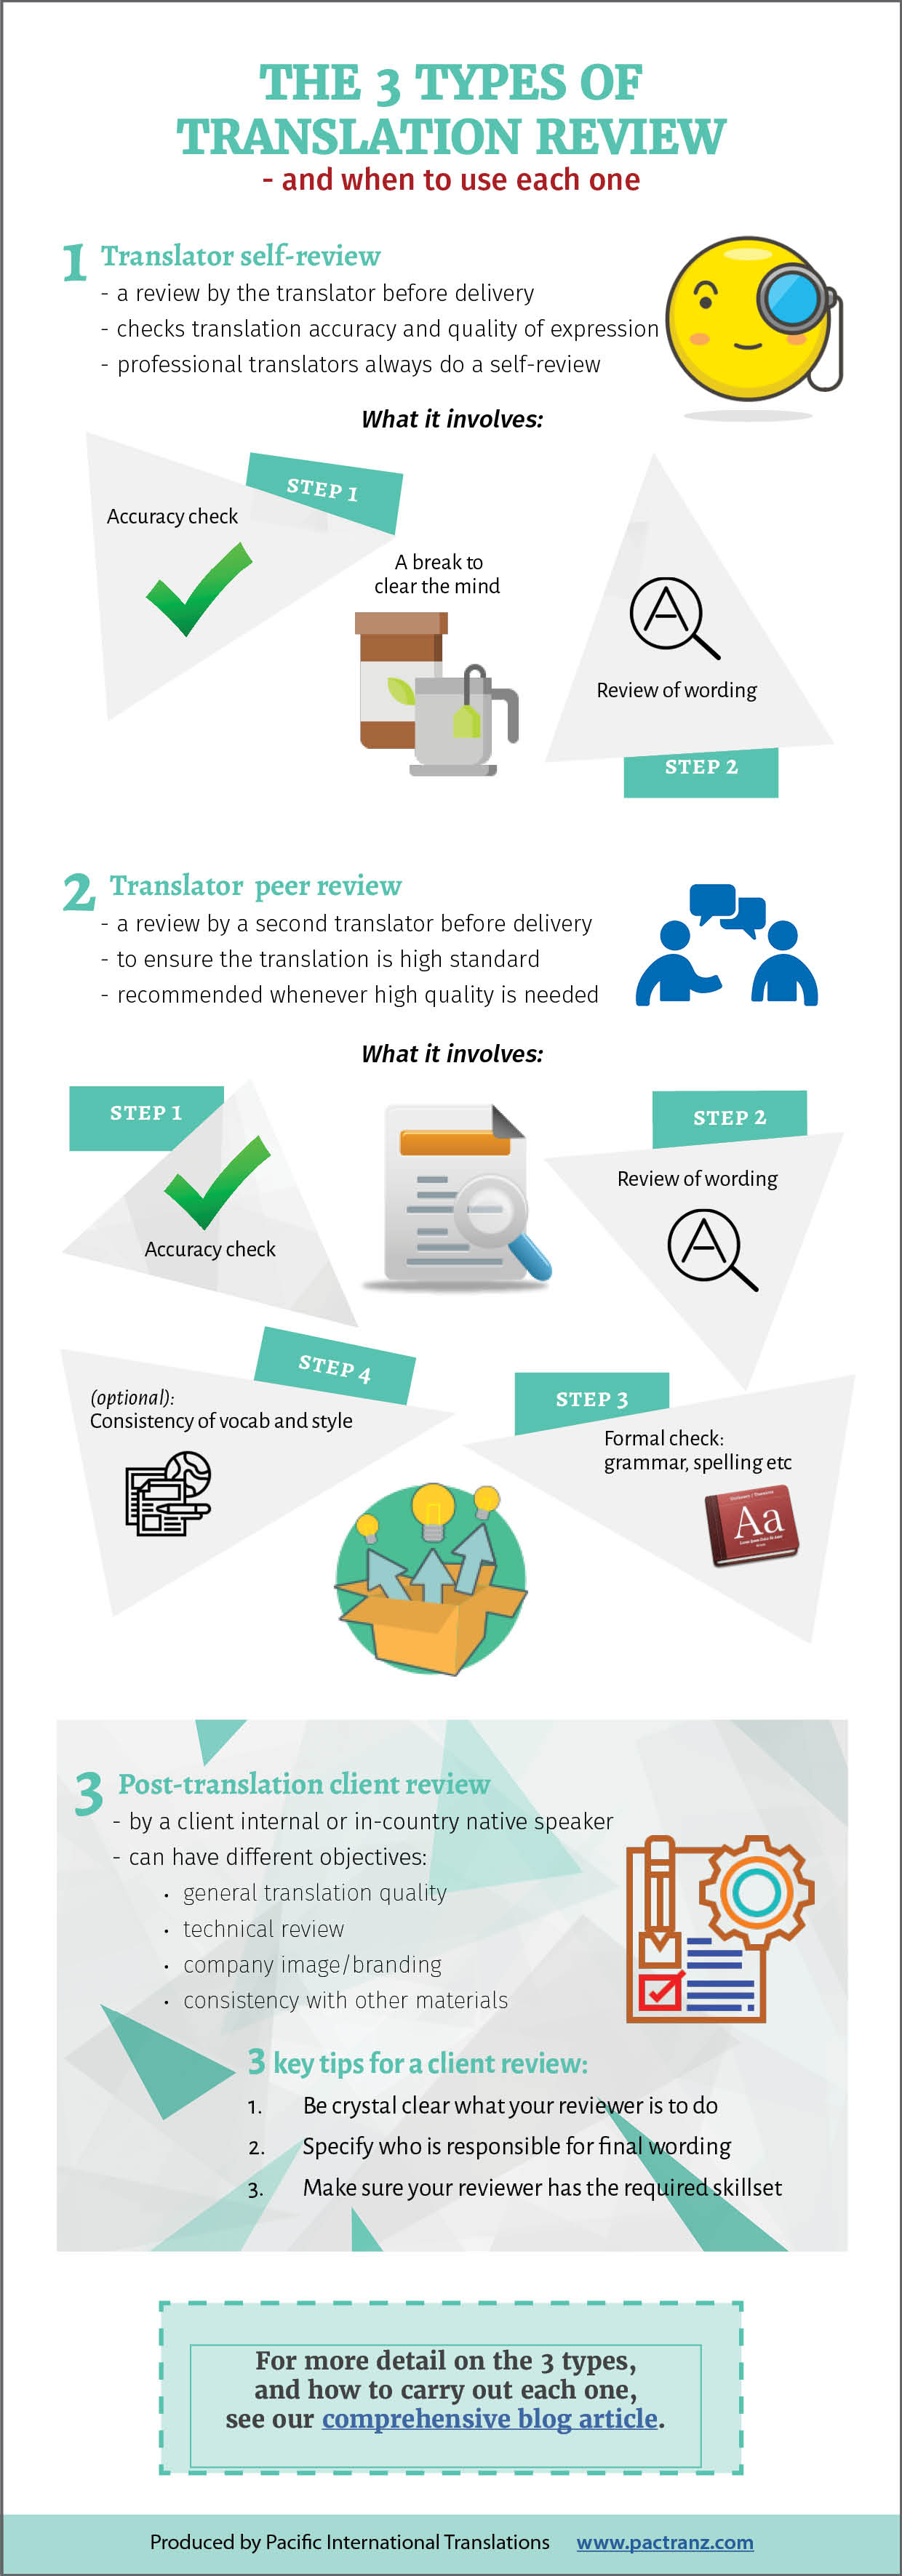 The 3 types of translation review, and when to use each one